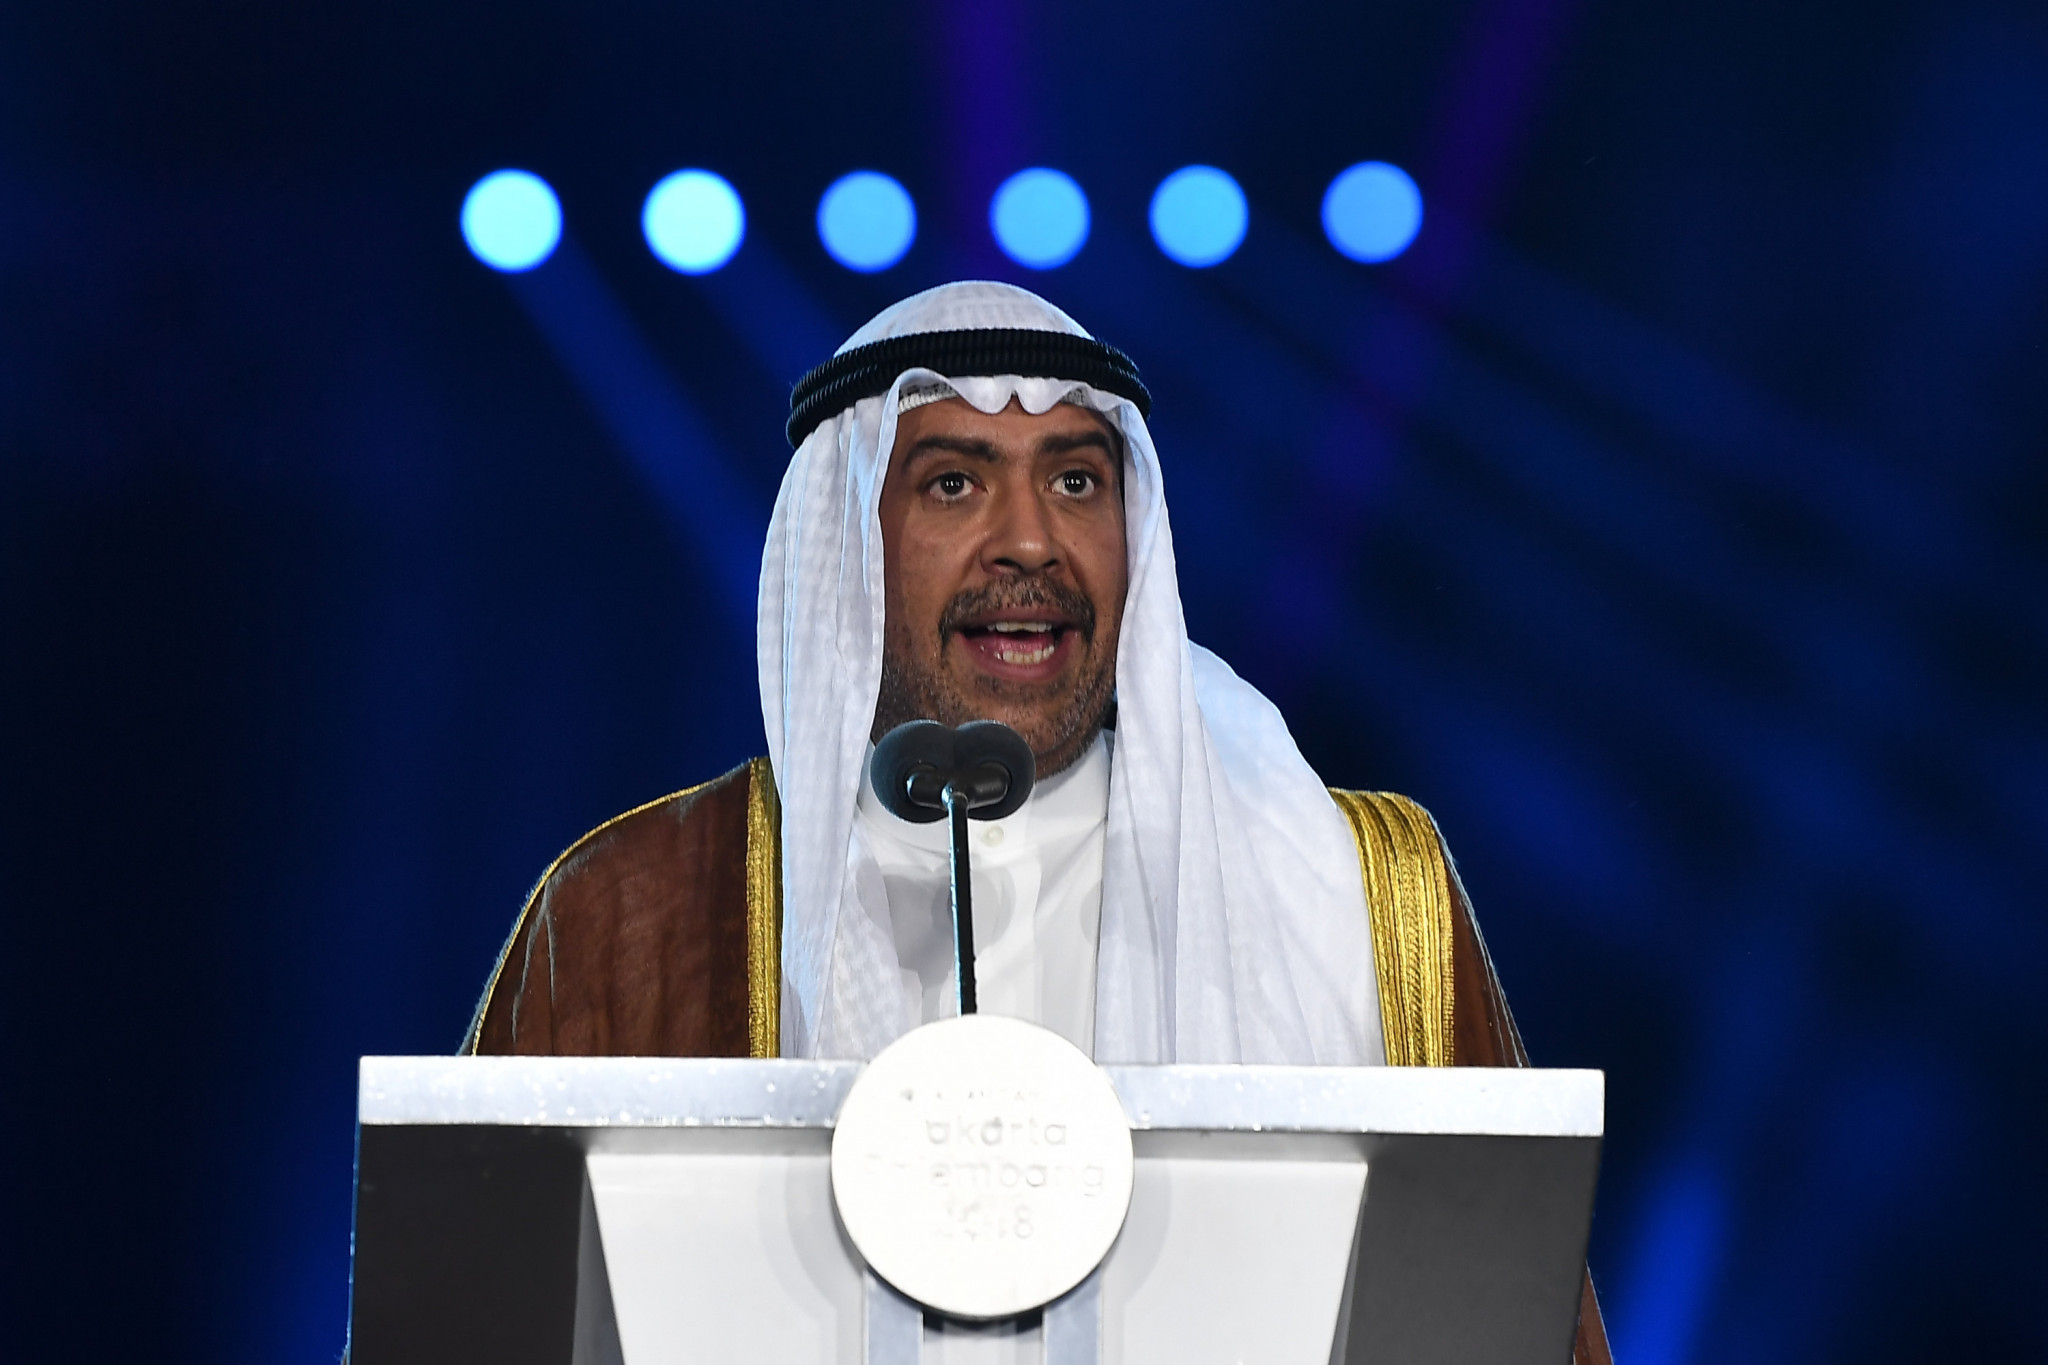 Sheikh Ahmad steps aside as IOC member pending outcome of Ethics Commission hearing